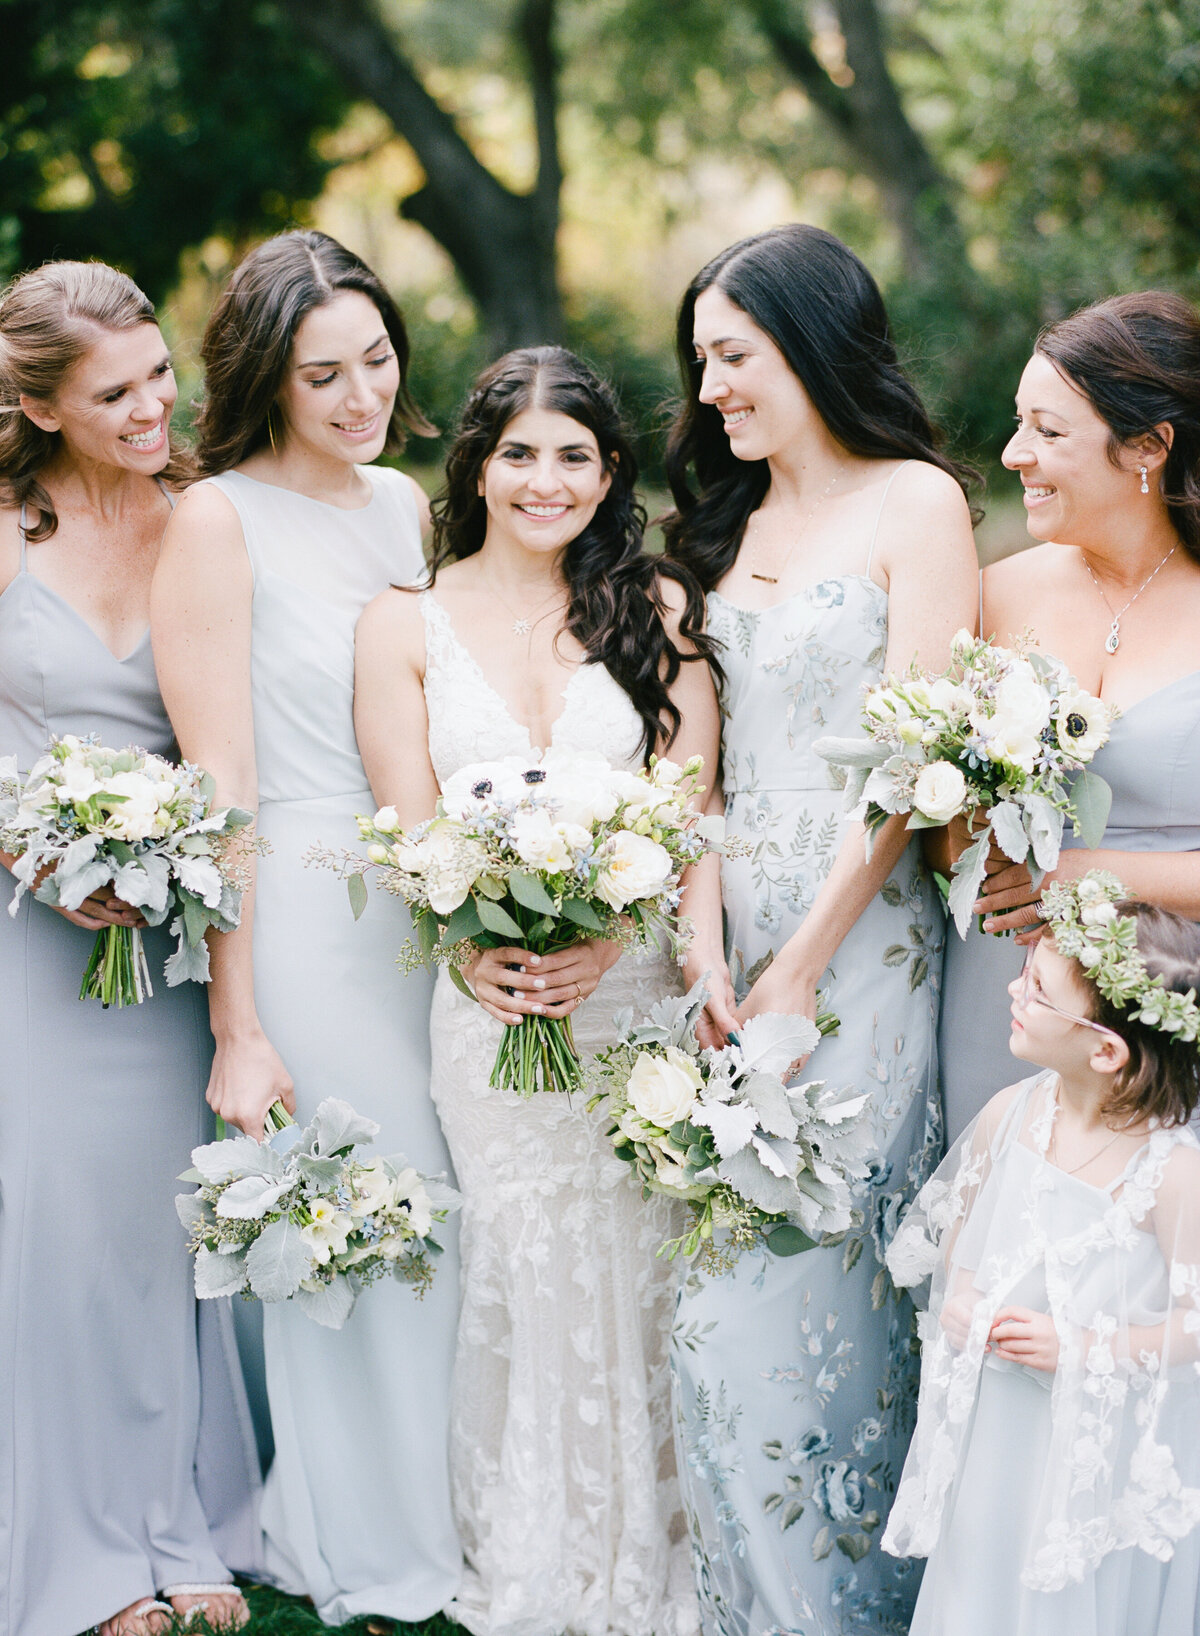 Bridesmaid shot, pale blue/grey bridesmaid dresses